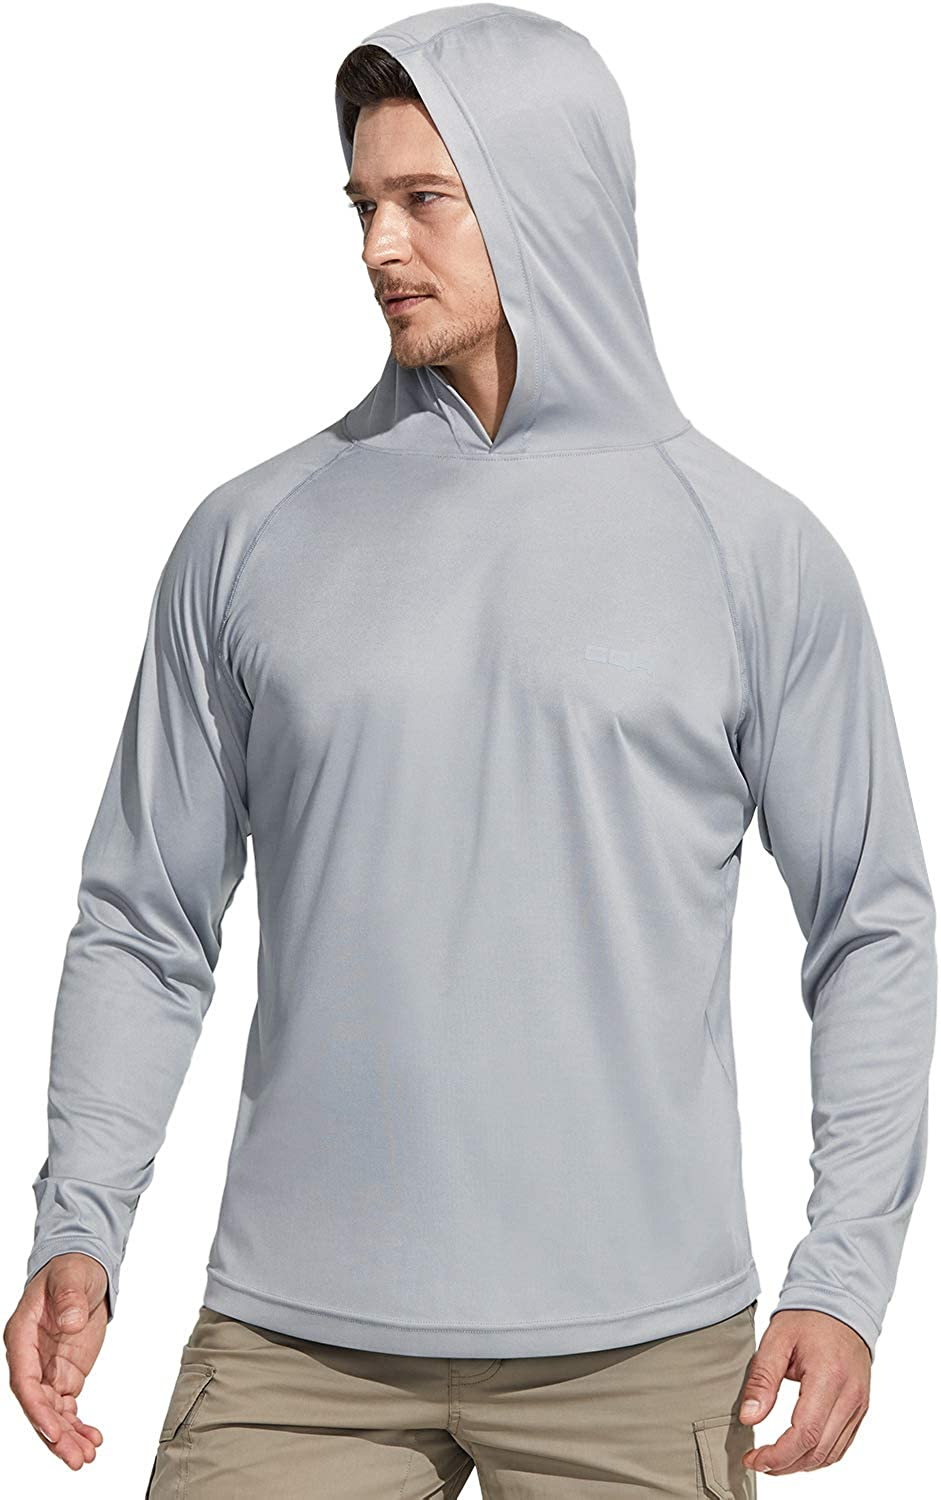 UV//SPF Quick Dry Loose-Fit Outdoor Shirts CQR Mens UPF 50 Performance Running Workout Shirt Pull Over Long Sleeve Hoodie